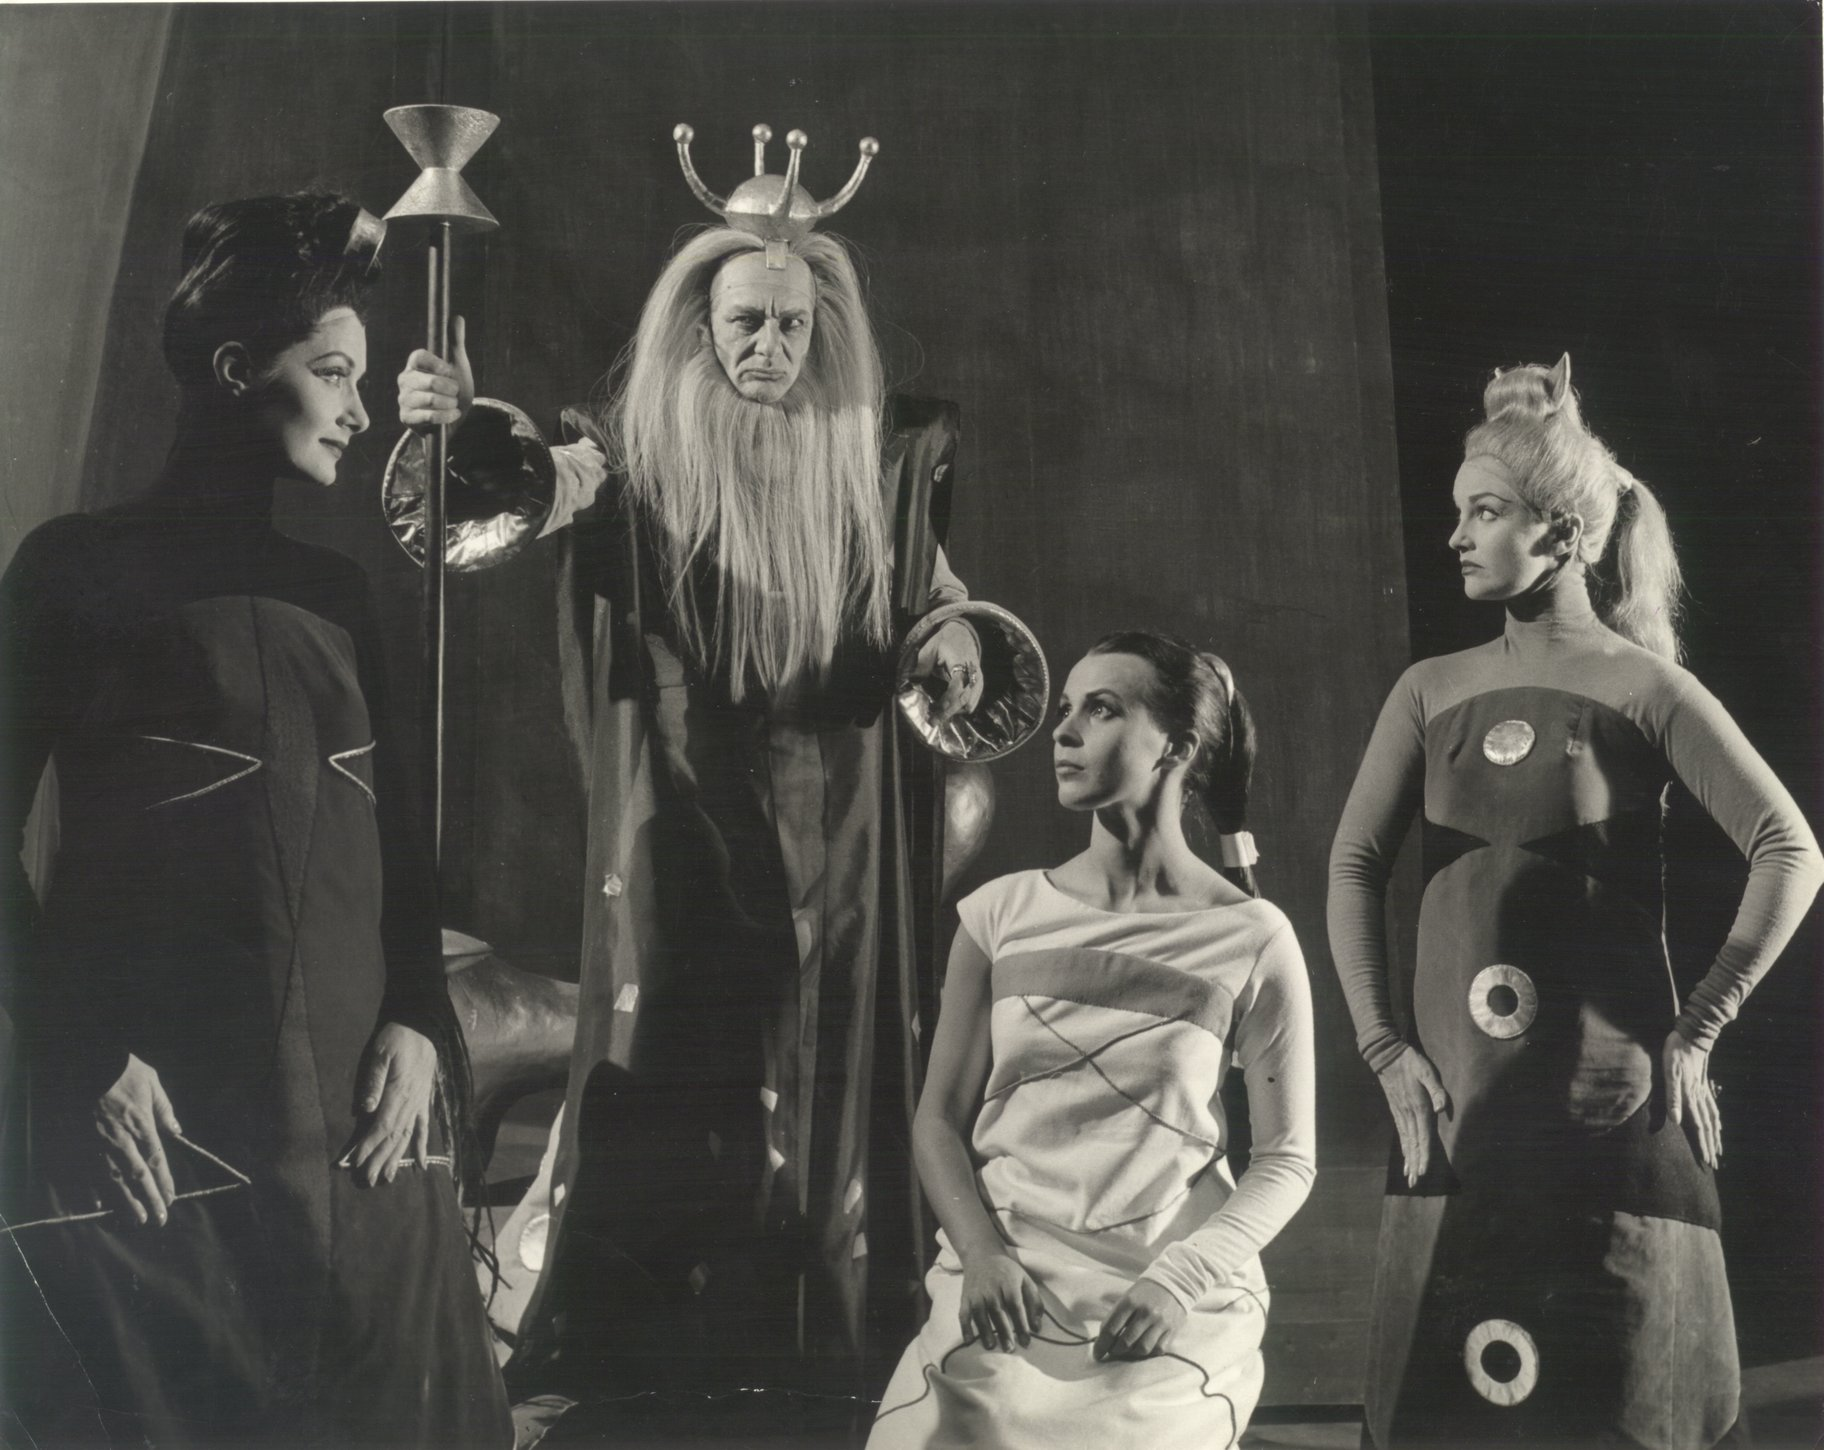 Three women in smock-style dresses stand in front of a bearded man with a crown and sceptre.